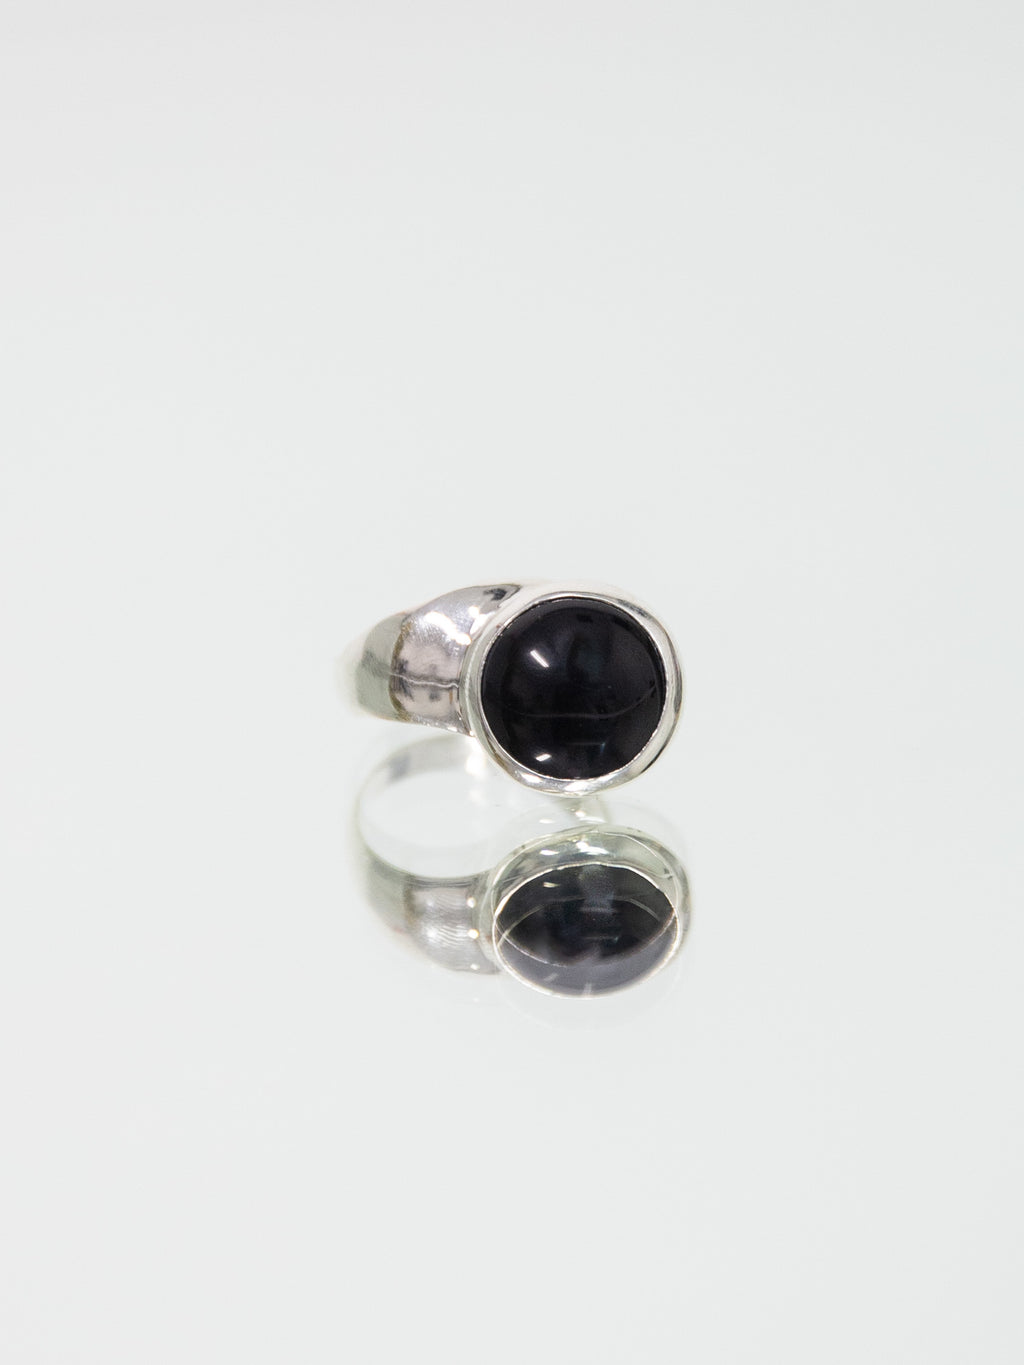 FARIS OFFSET Ring - Sterling Silver & Onyx